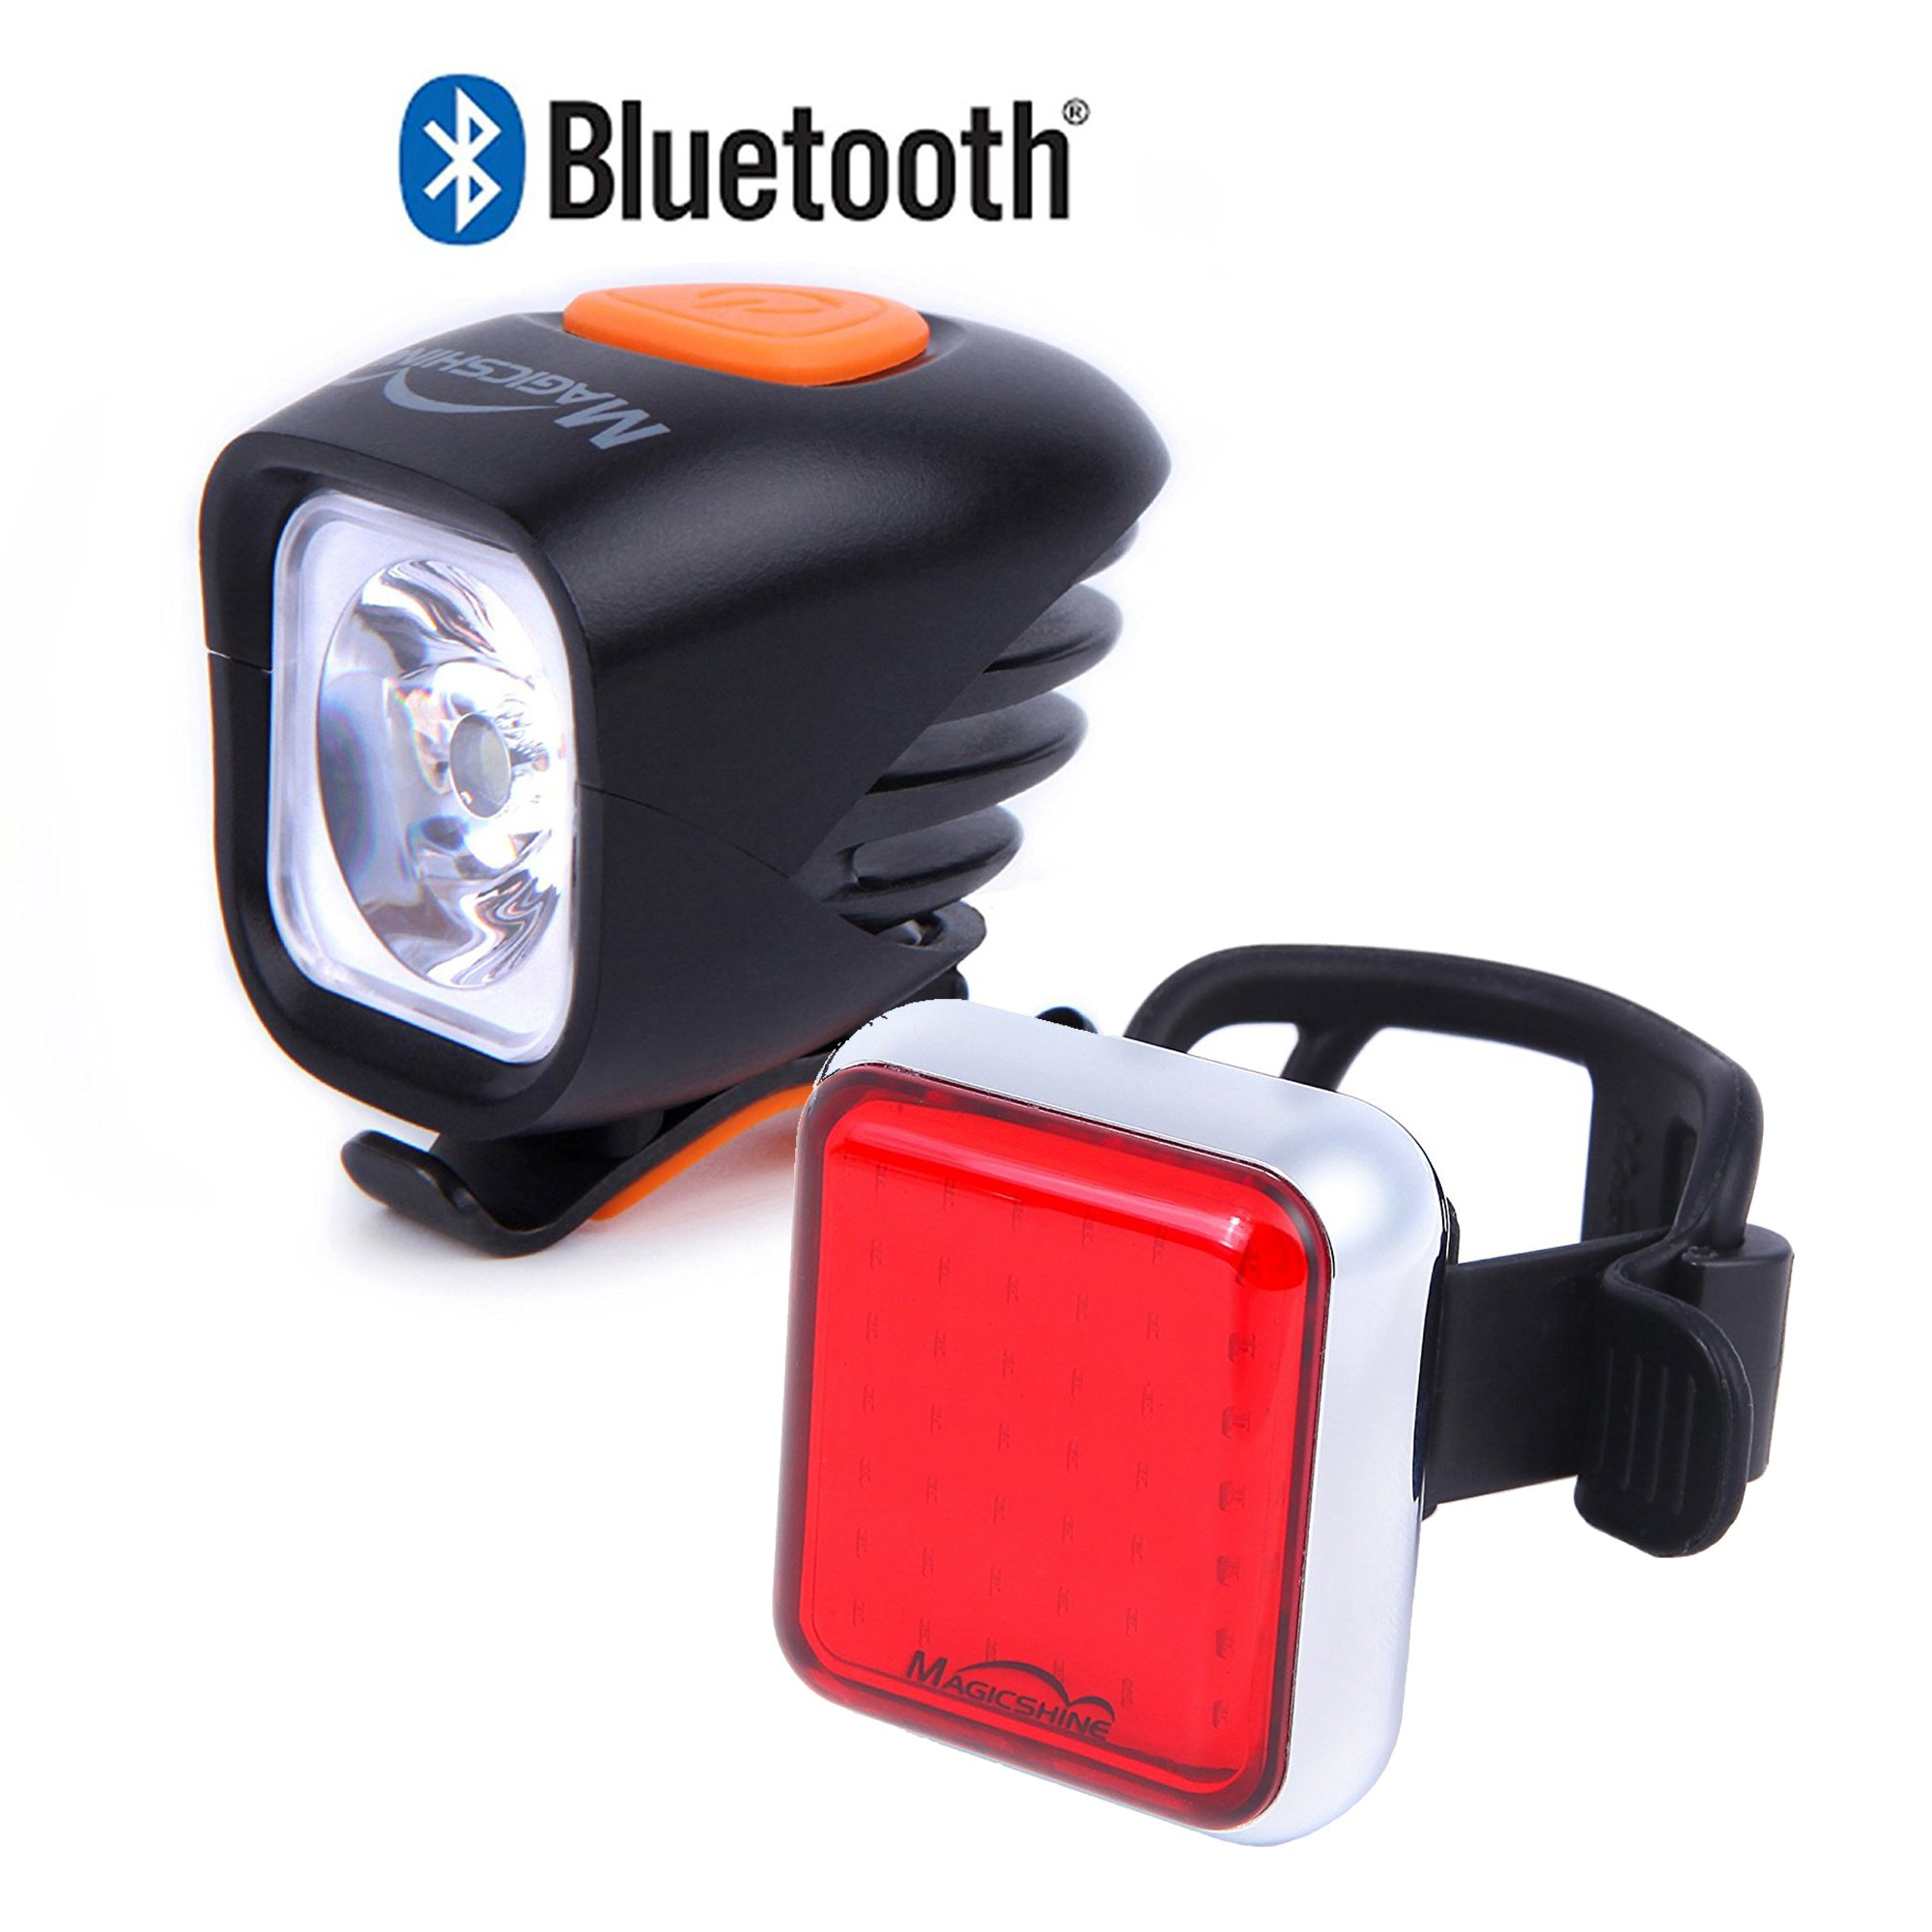 Magicshine Road bike light combo, commuter bike headlight and taillight set, warning light, safety light for urban and city cyclists, portable and convenient (Commuter Set)